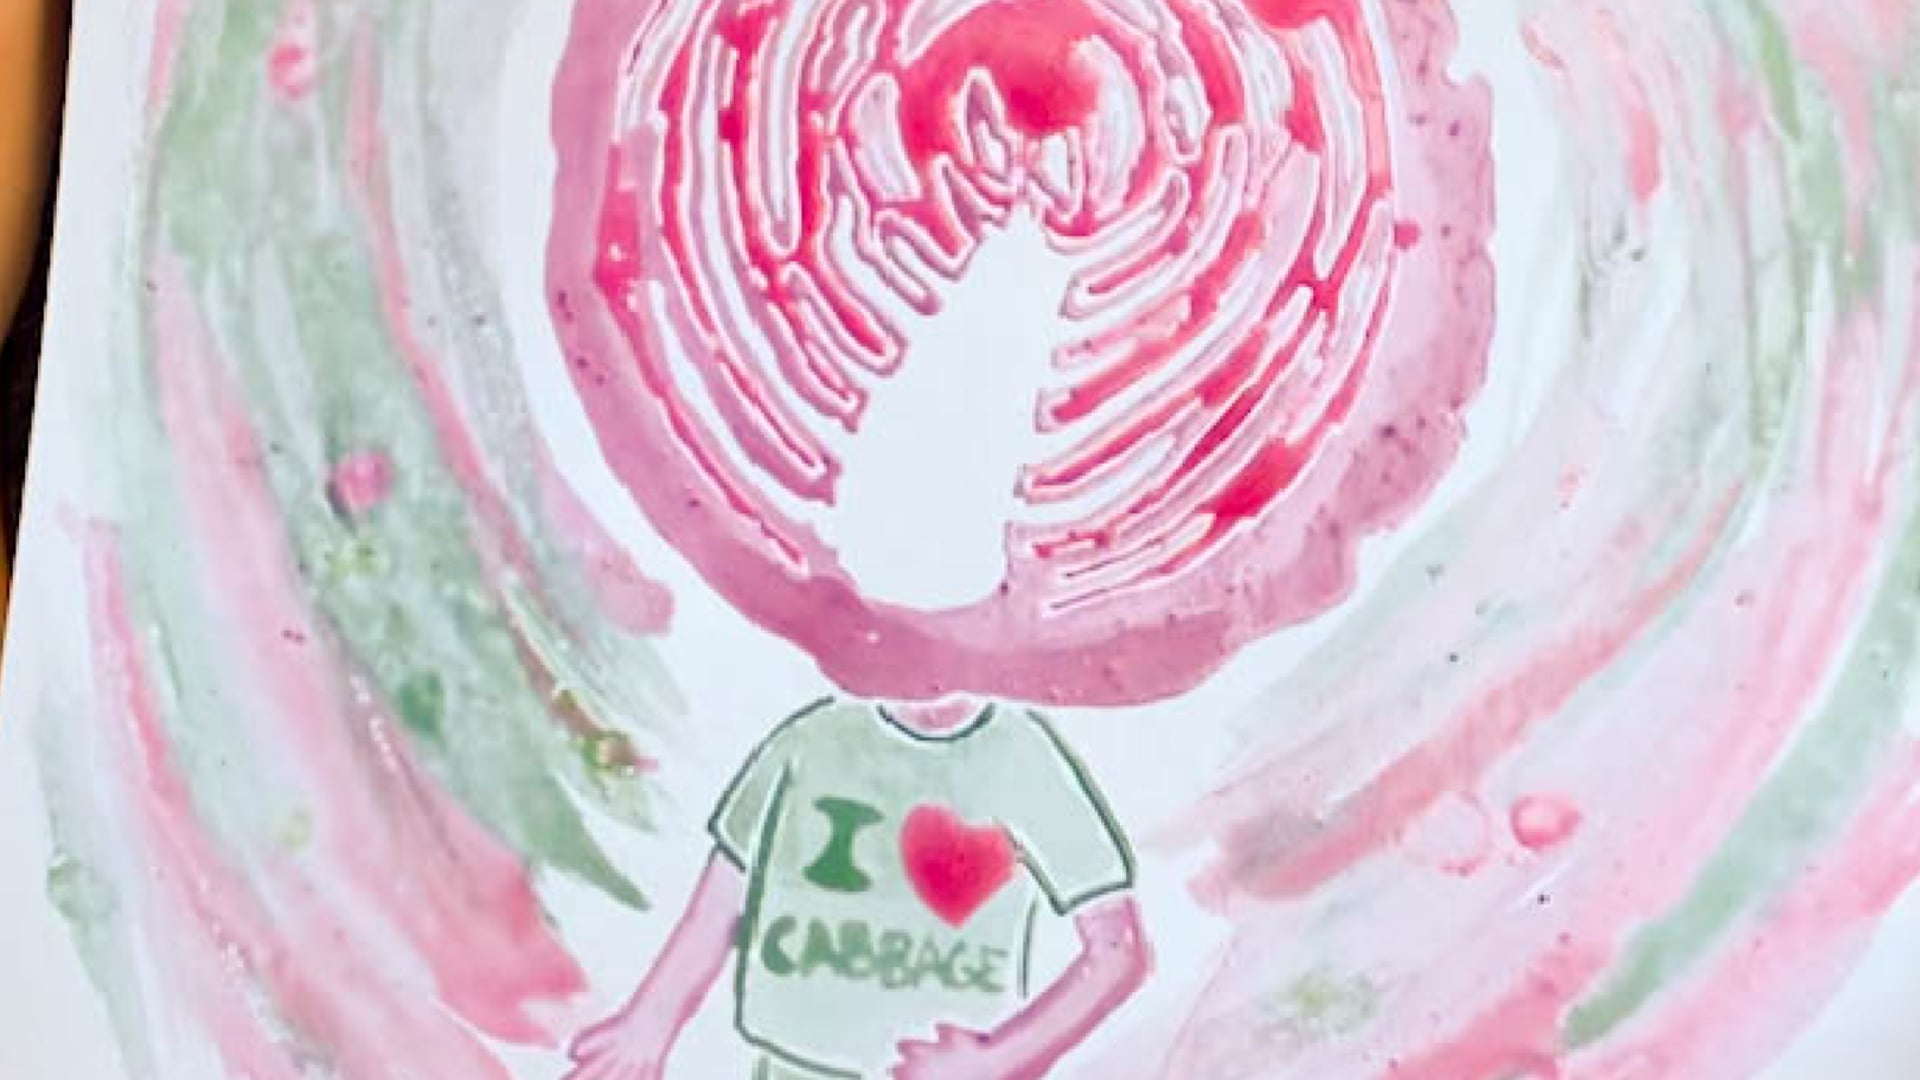 Make Paint out of Cabbage!